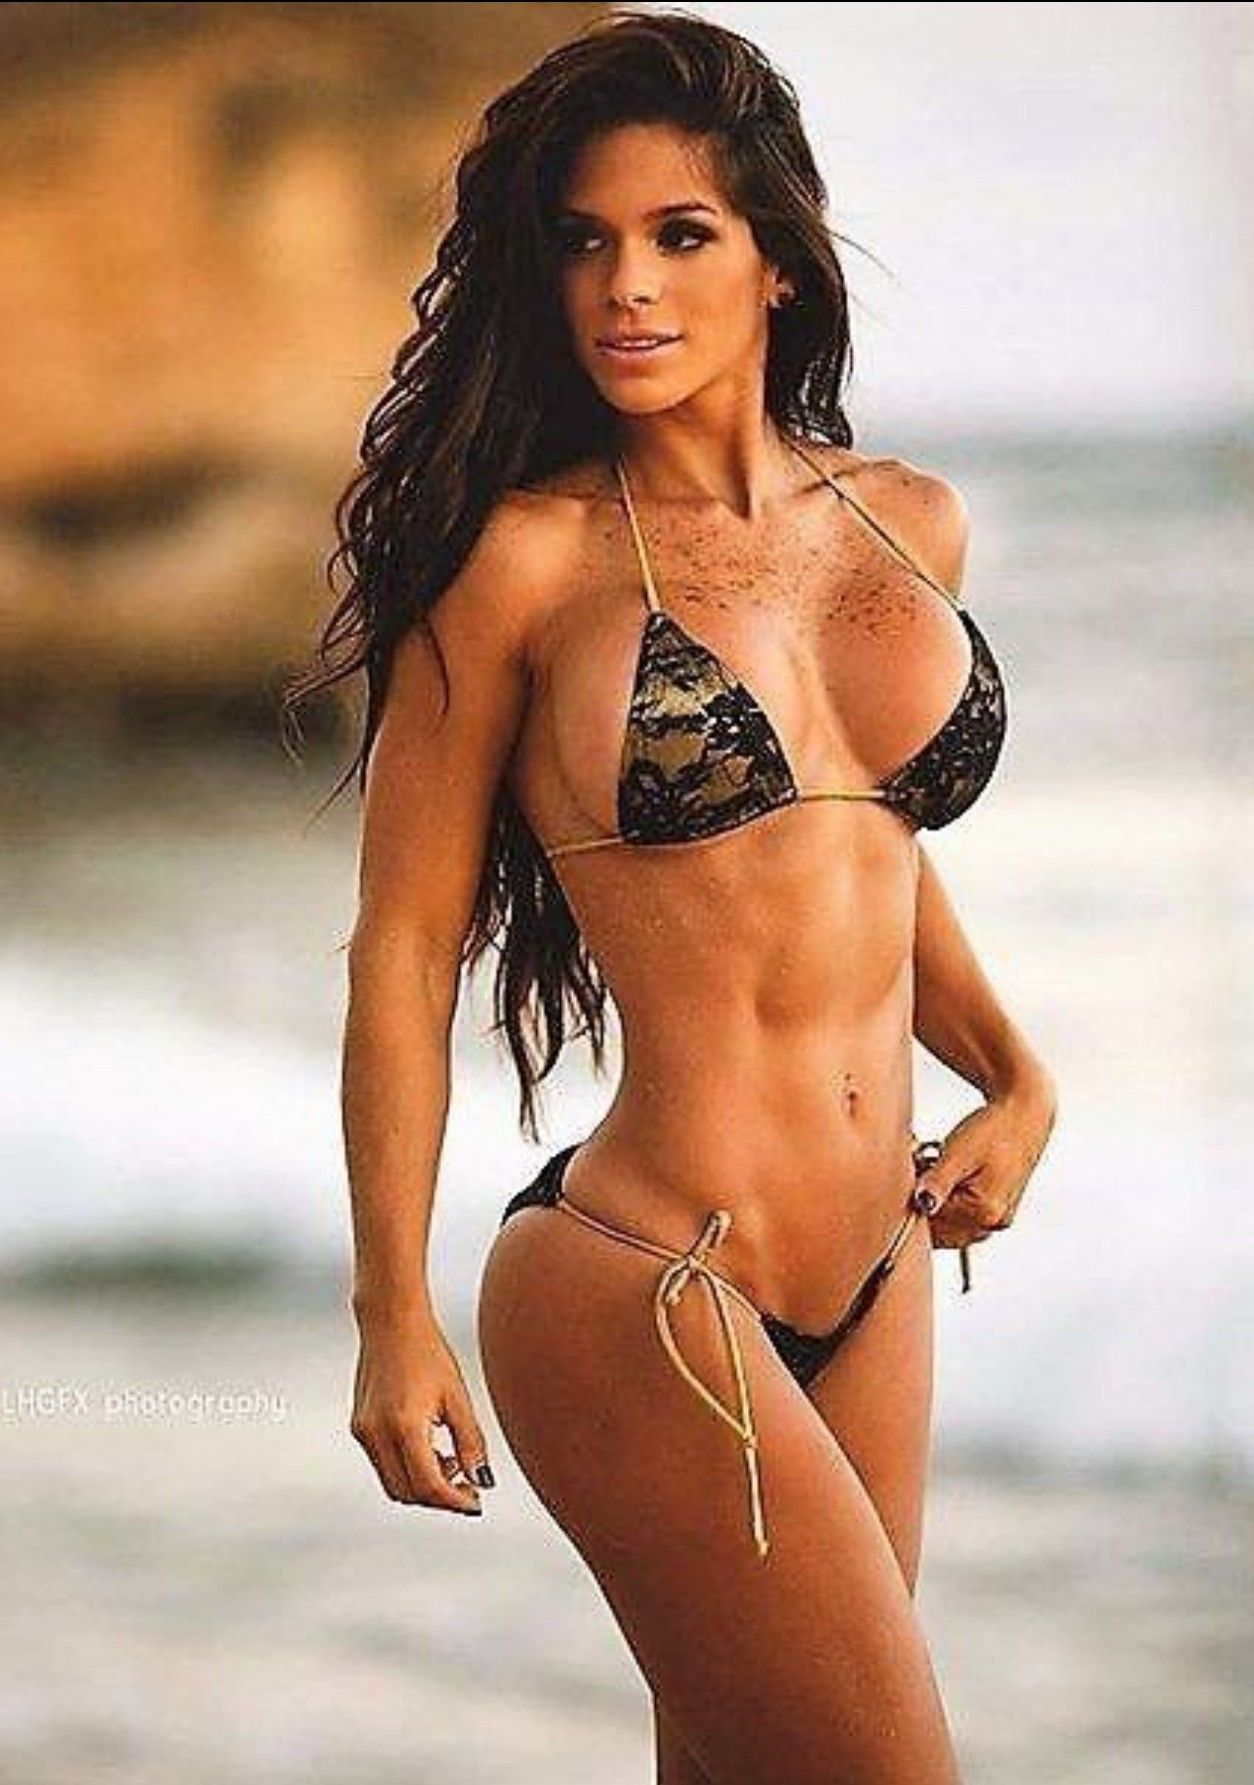 Pin By Lee Graeber On Michelle Lewin Michelle Lewin Ripped